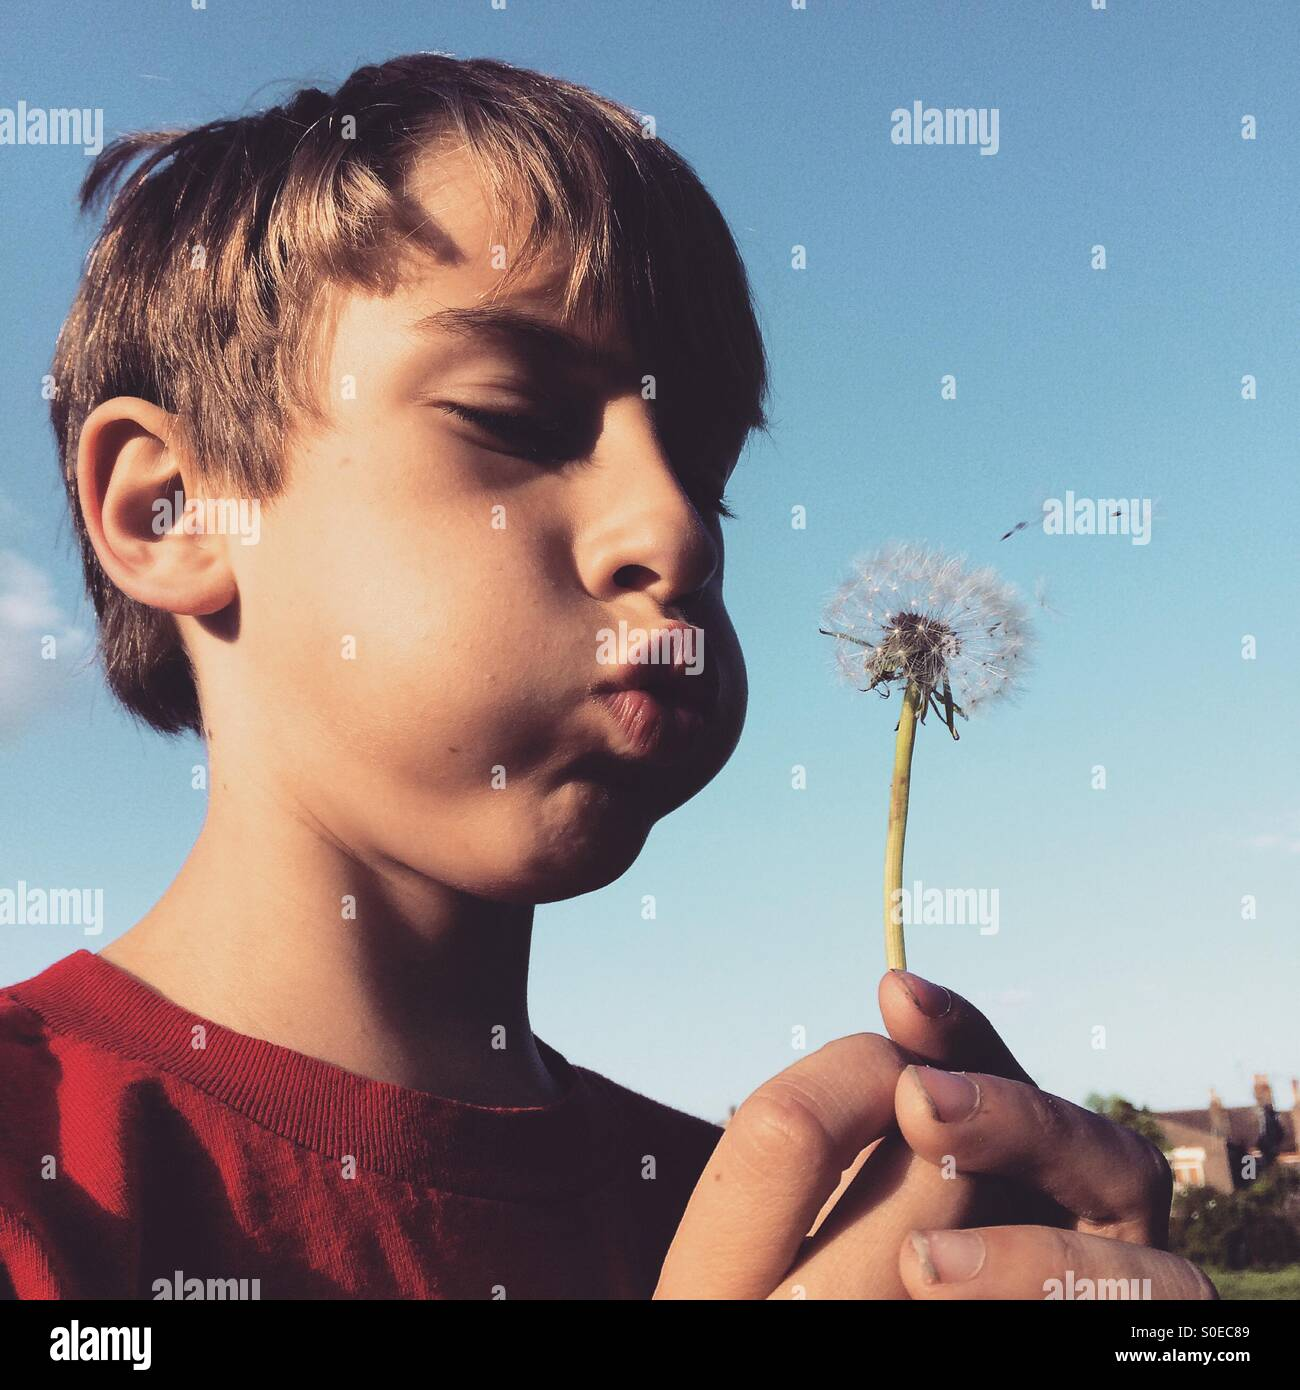 A young boy blowing a dandelion. - Stock Image